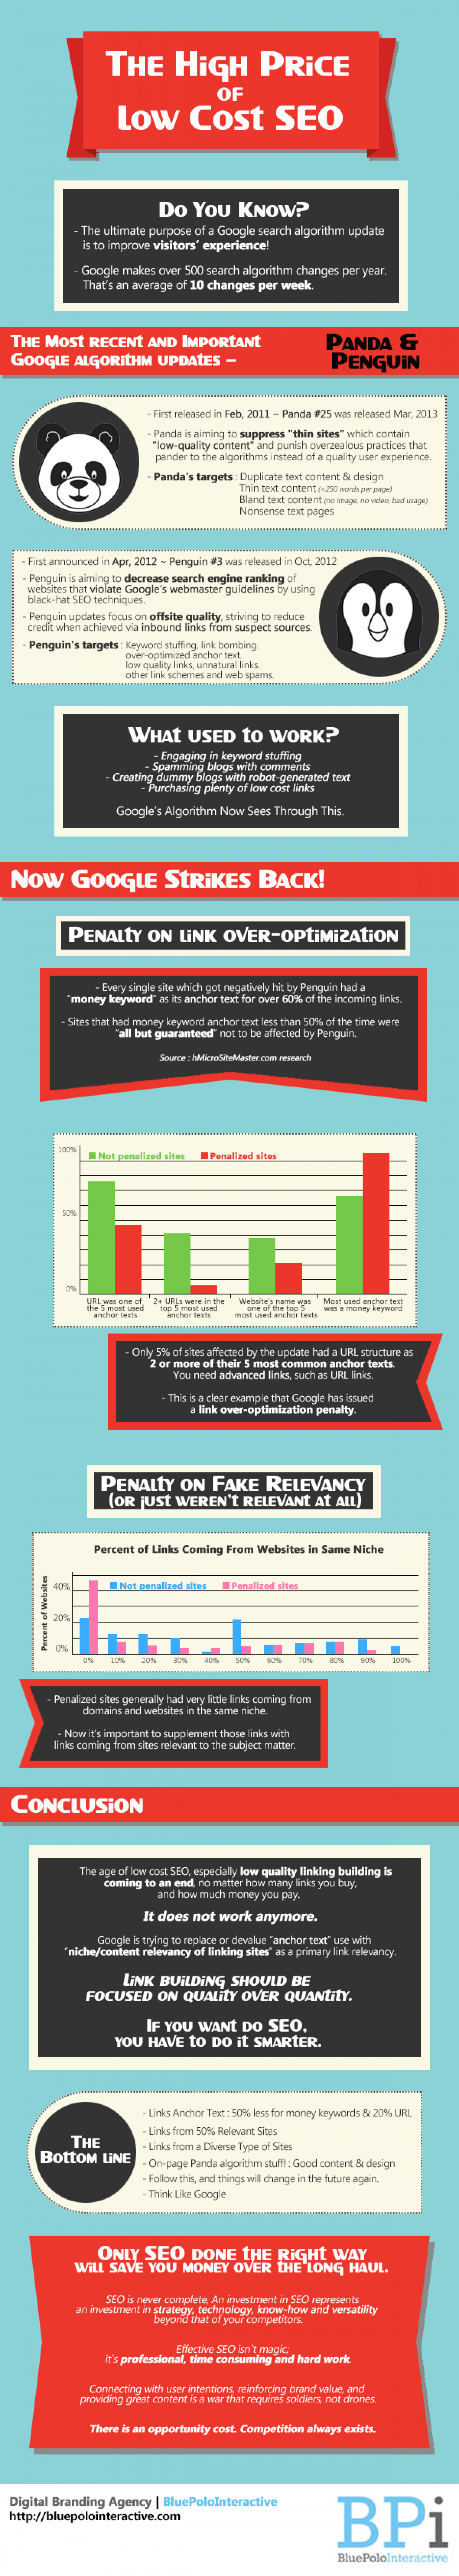 The High Price of Low Cost SEO Infographic